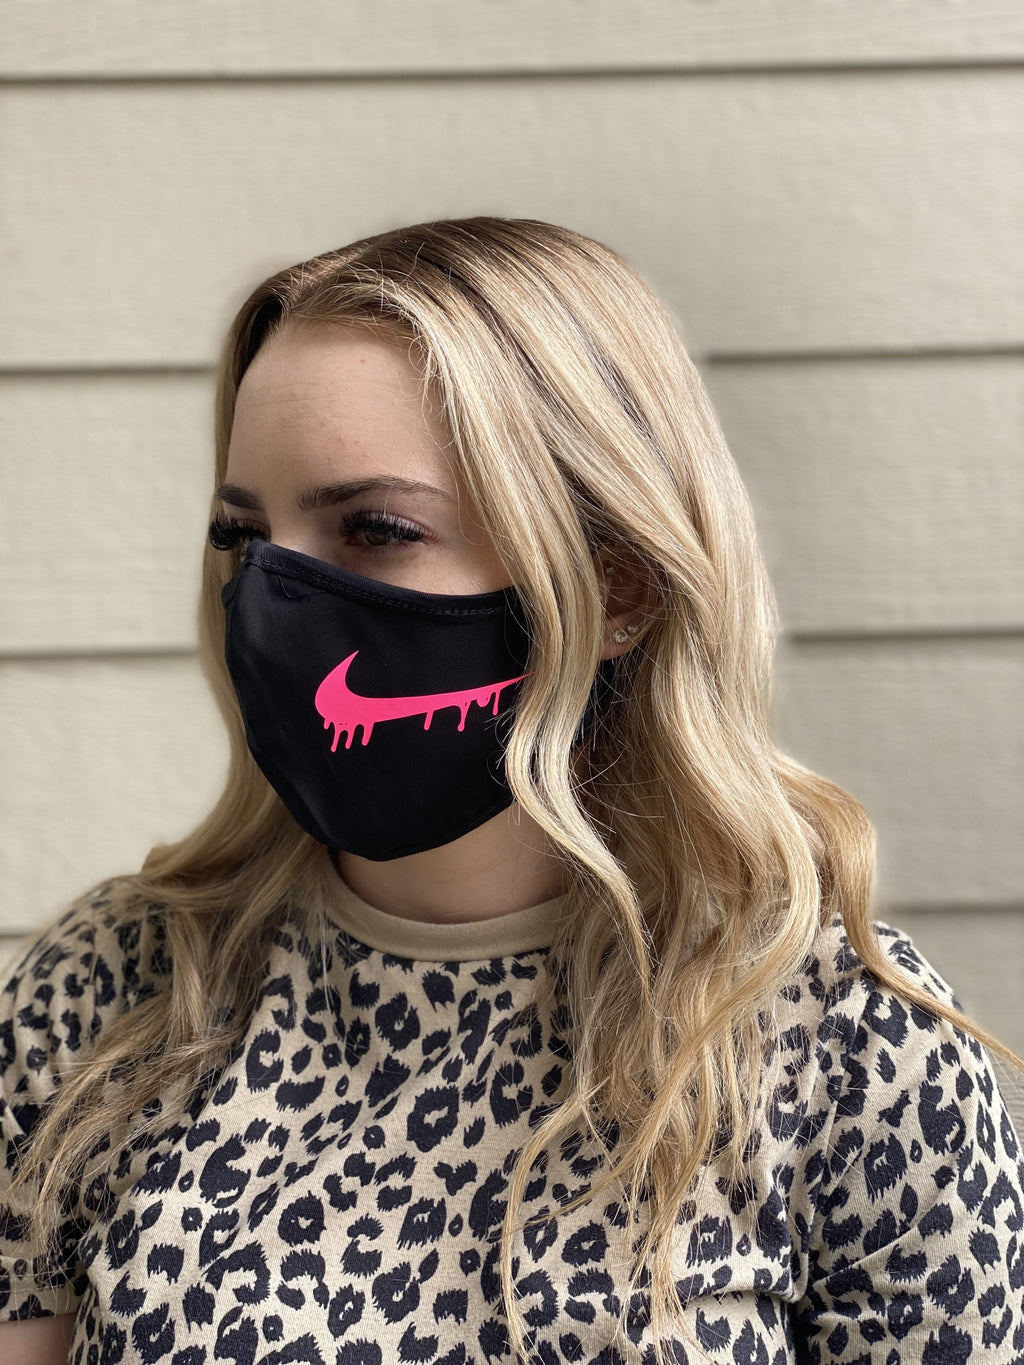 Washable & Reusable Mask - Nike Drip in Pink